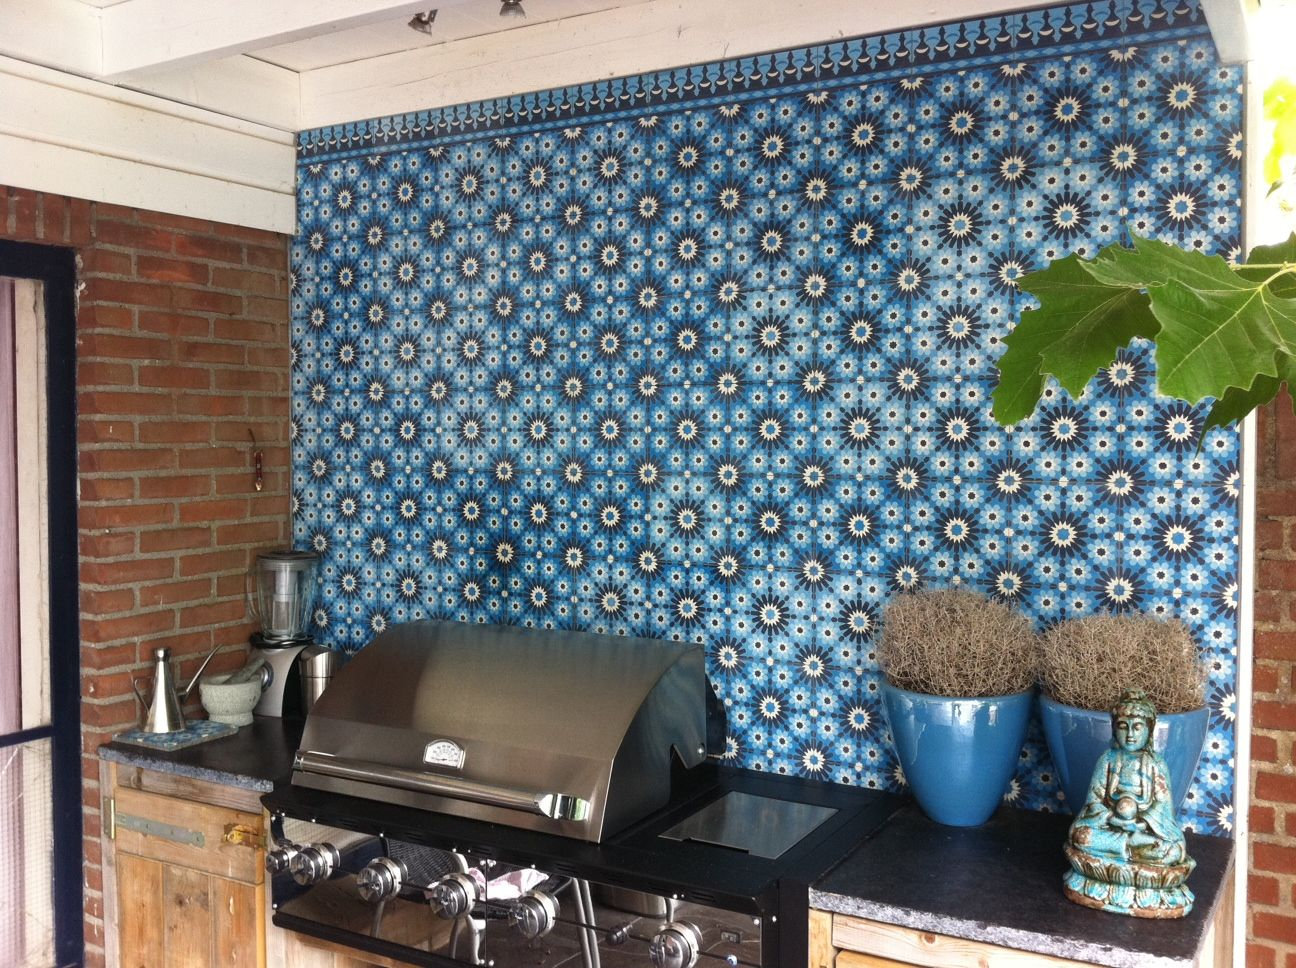 Mosaic Tile Outdoor Wall. indoor mosaic tile outdoor wall ceramic ...